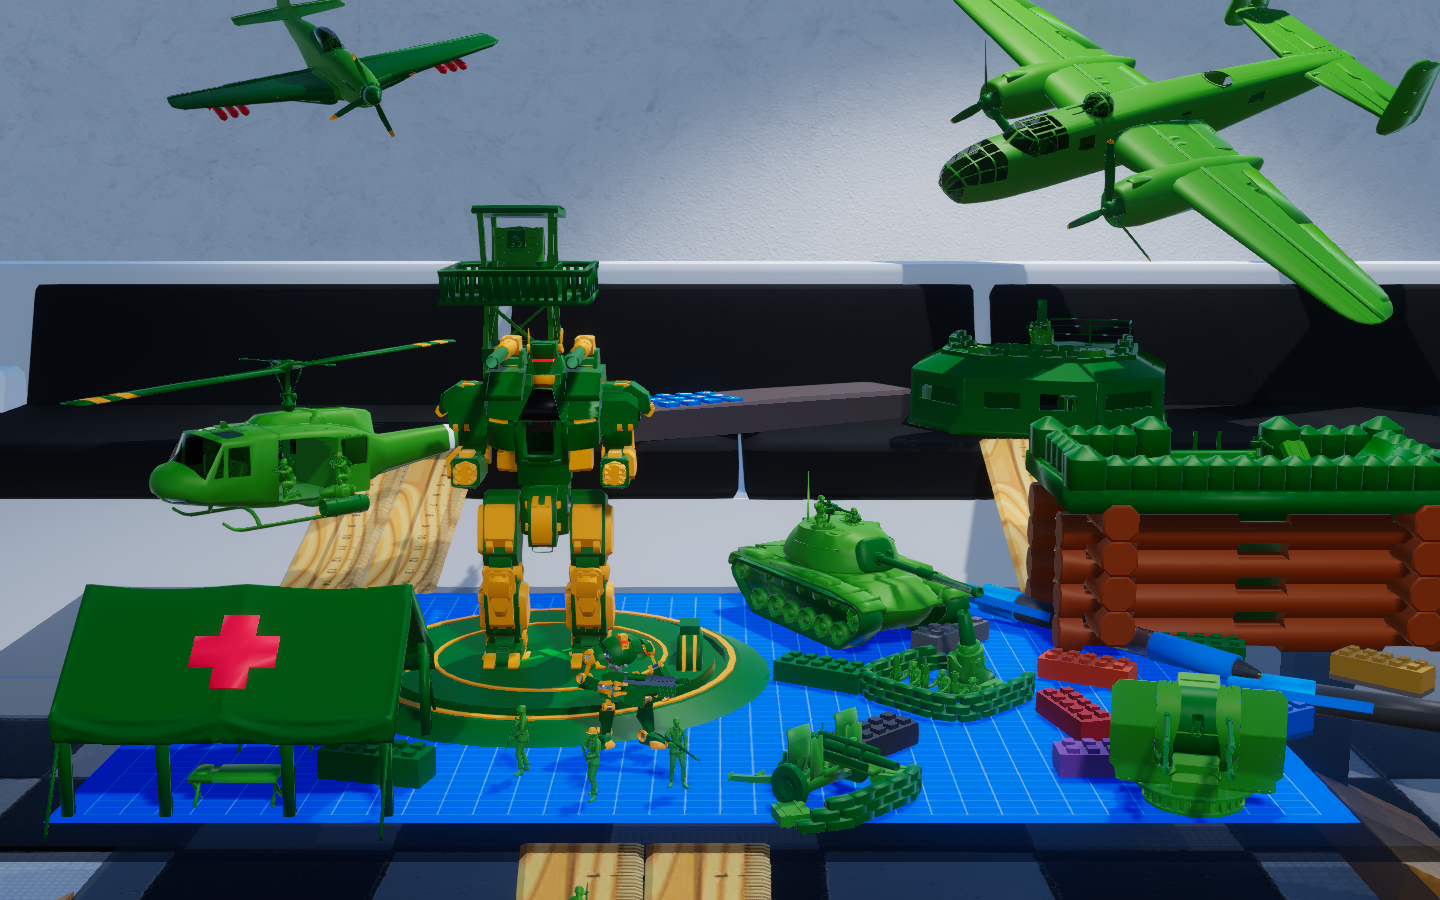 Devlog #15 B-25 Bomber, Mega Mech, War Robot, and All Tower Are Now Controllable!